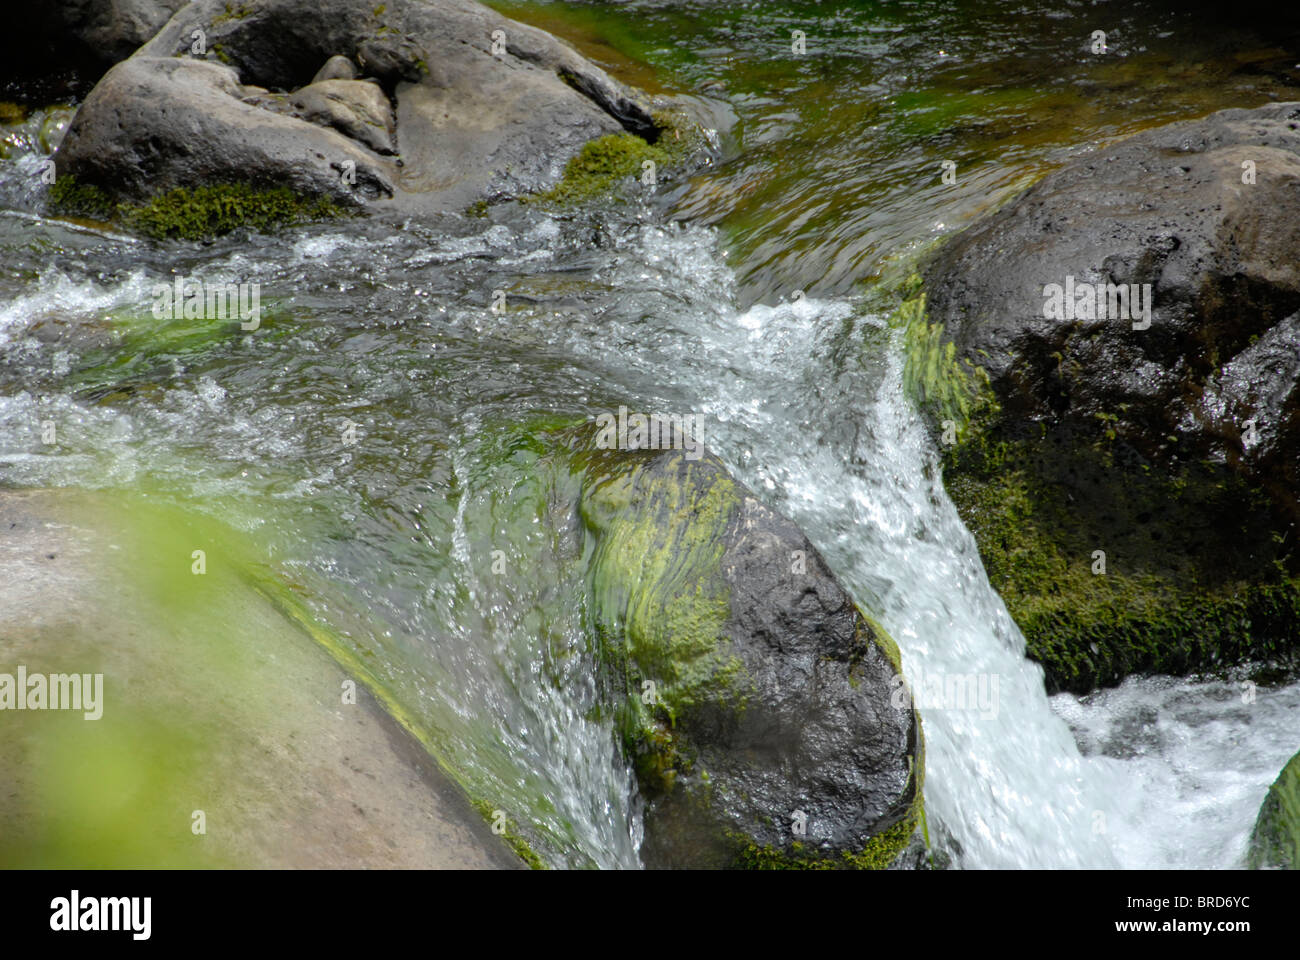 A babbling brook in Hawaii with swift , clear water flowing over and around moss-covered stones. Photo taken with - Stock Image